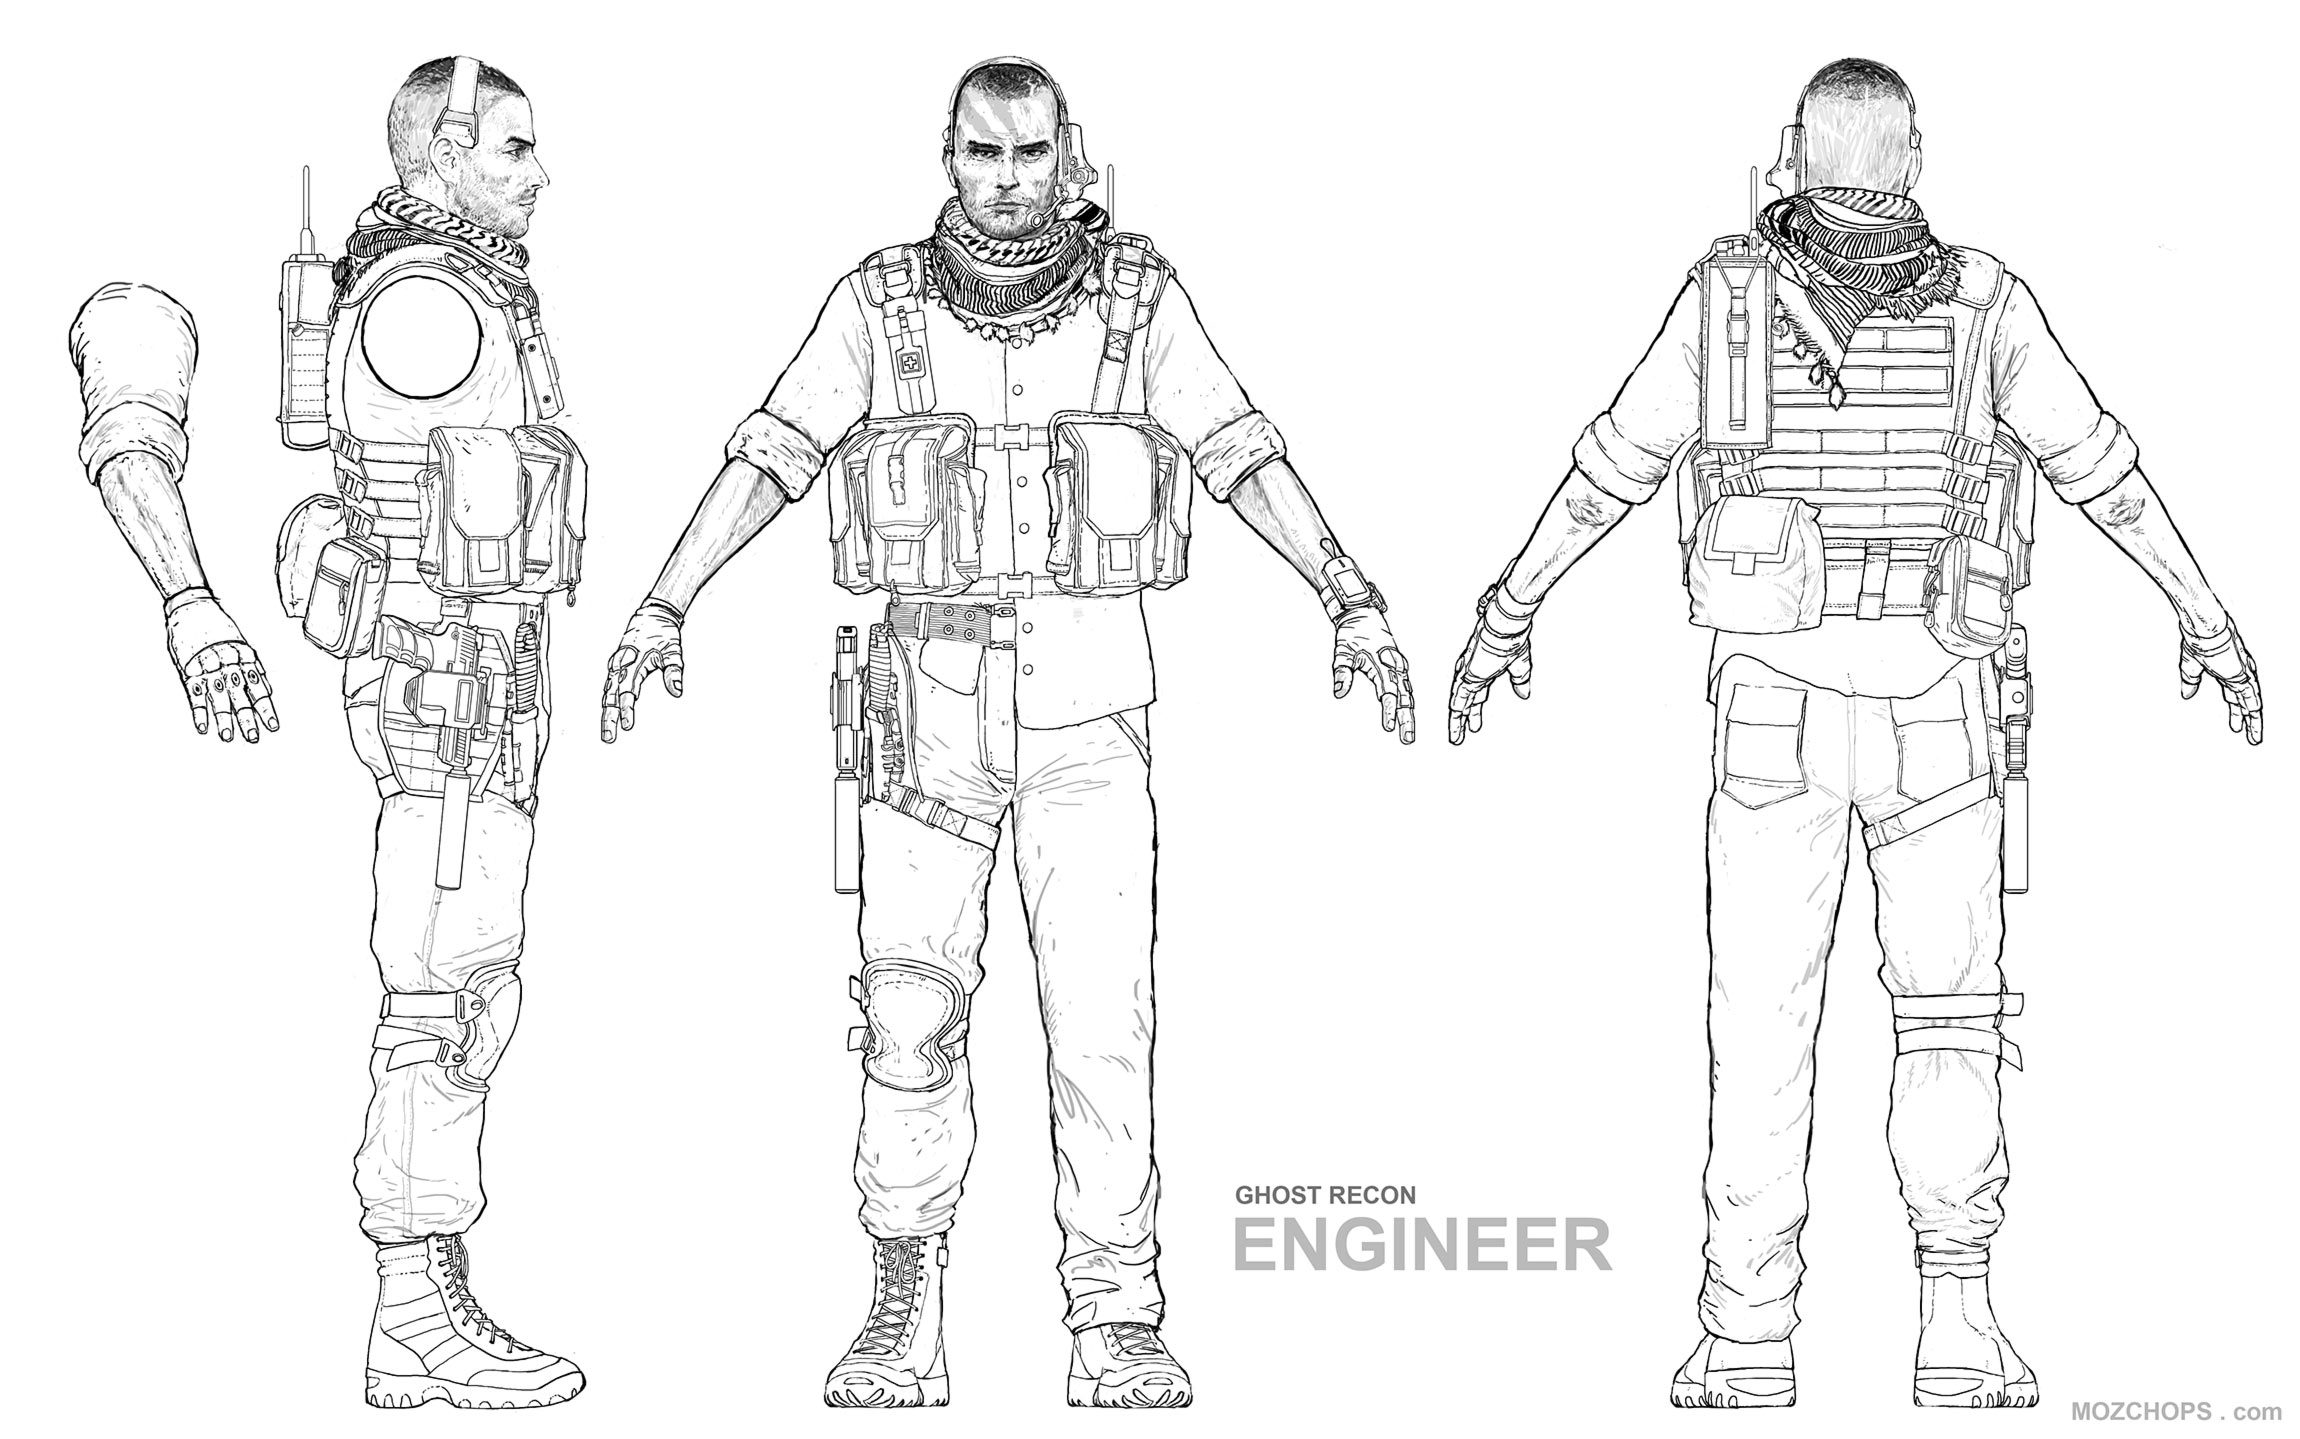 ghost-recon-engineer-character-sheet-by-mozchops